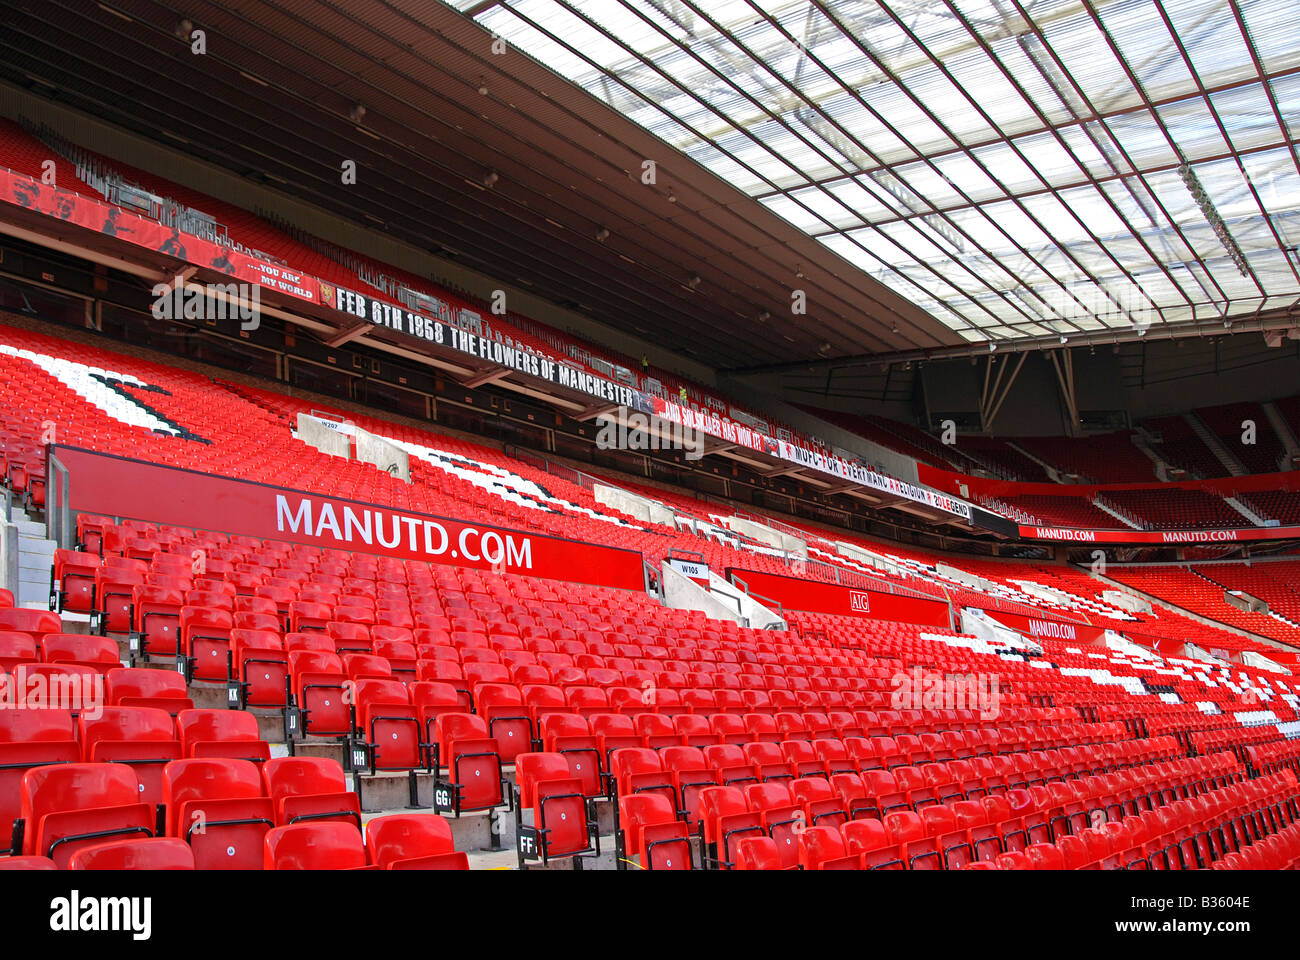 inside the empty stadium at old trafford home of the famous 'manchester united' football club, manchester, - Stock Image